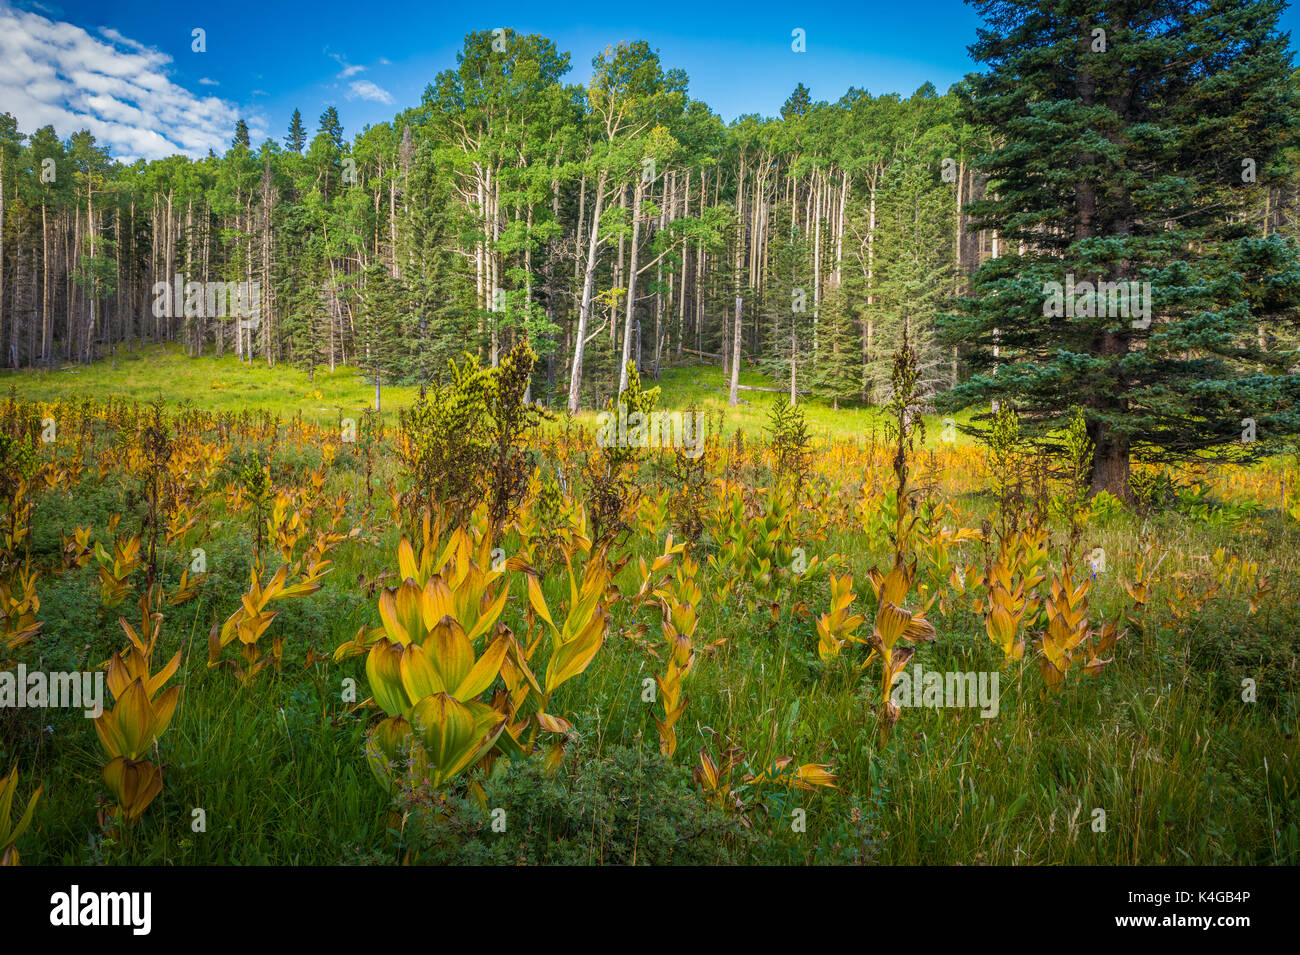 The Pecos Wilderness is a protected wilderness area within the Santa Fe National Forest and Carson National Forest. - Stock Image